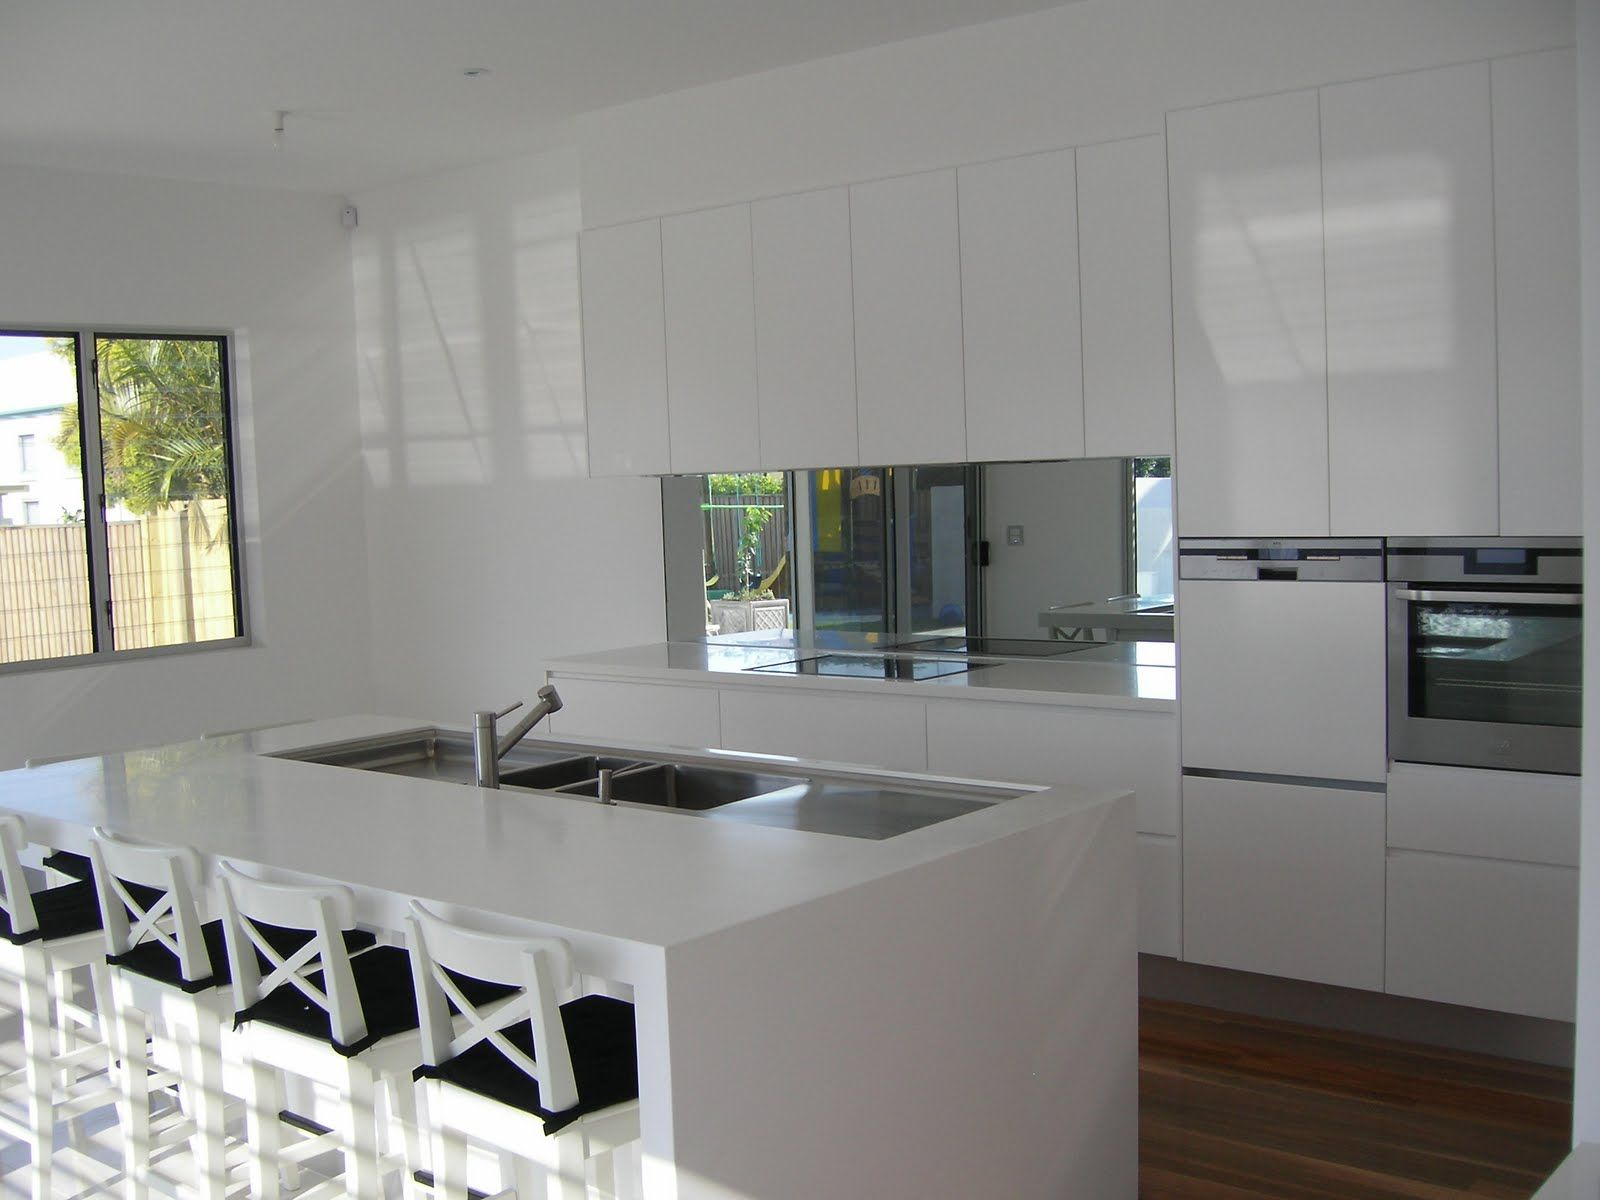 Splashback Ideas For White Kitchens Part - 29: Mirror Splashback Kitchen With White Push Open Doors No Handles Very Simple  Sleek And Have Coloured